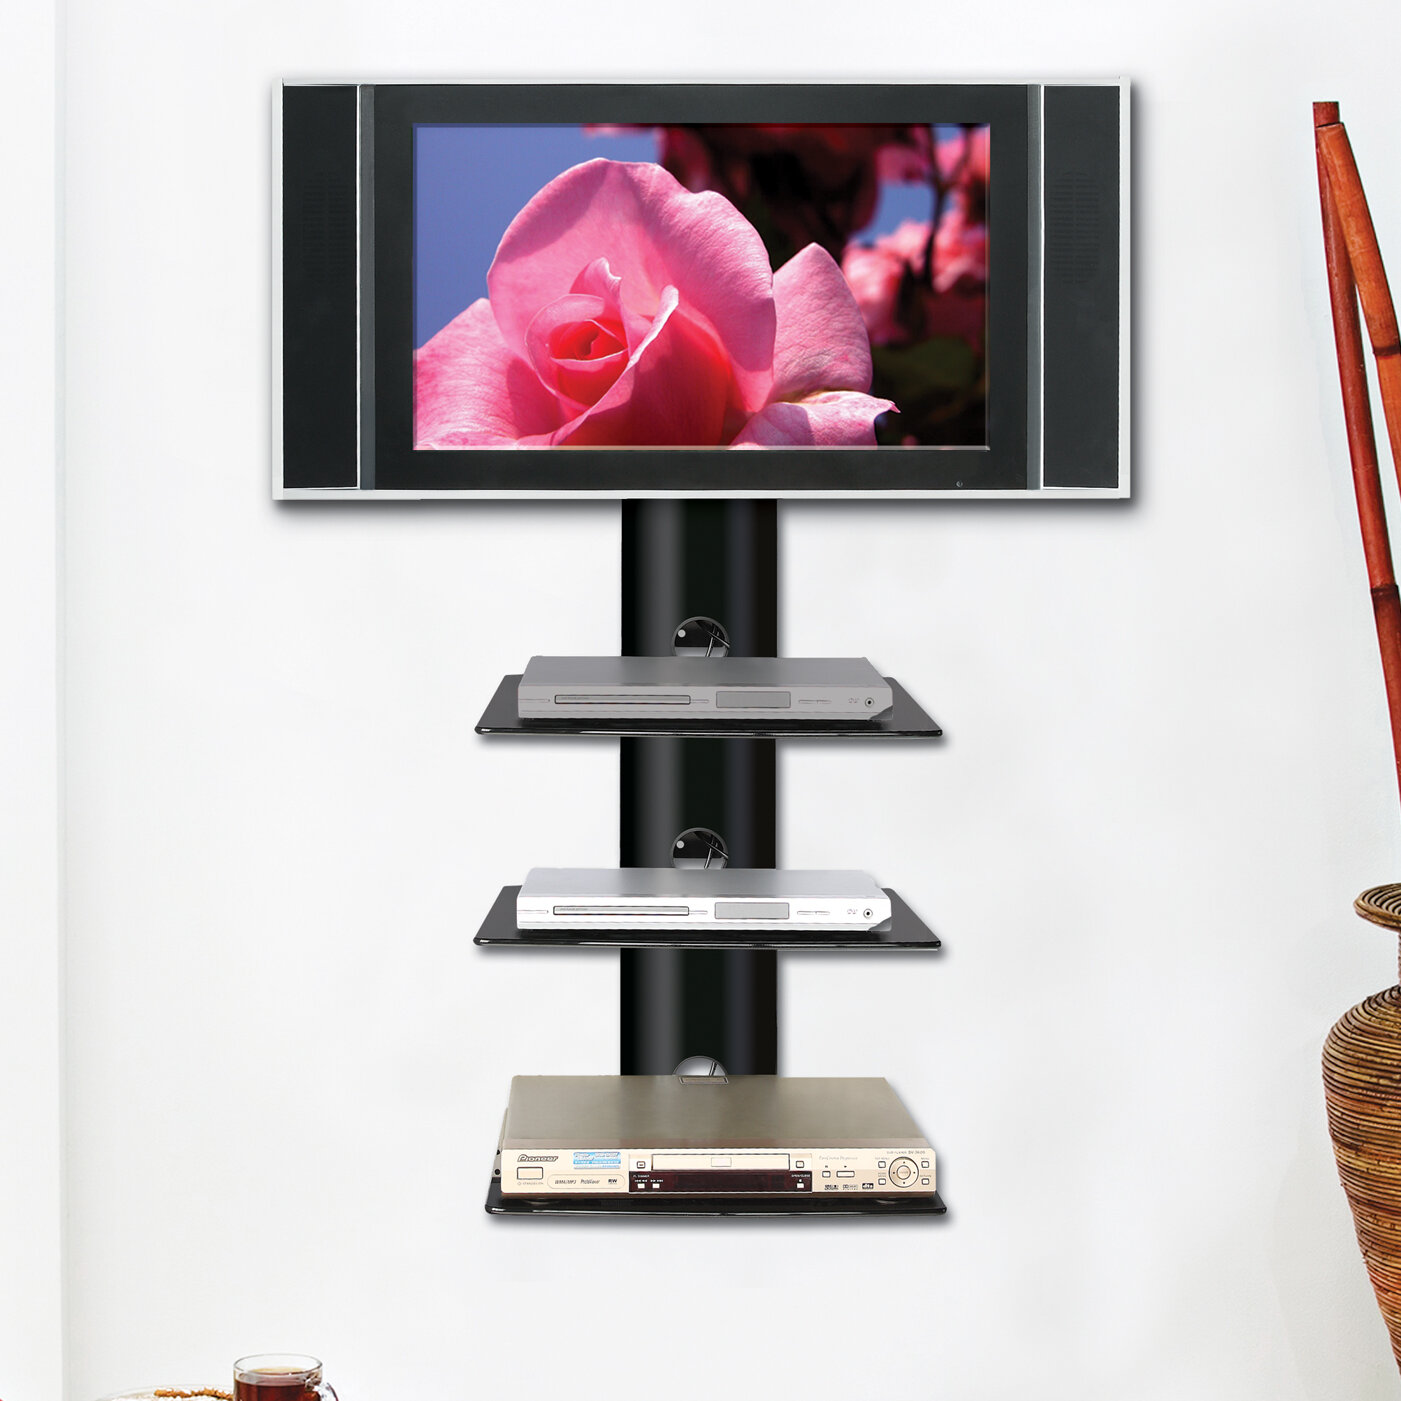 game mount edge amazon espresso blu shelf wall boxes consoles video players dp cable mounted ray com stony tv floating shelves wooden for